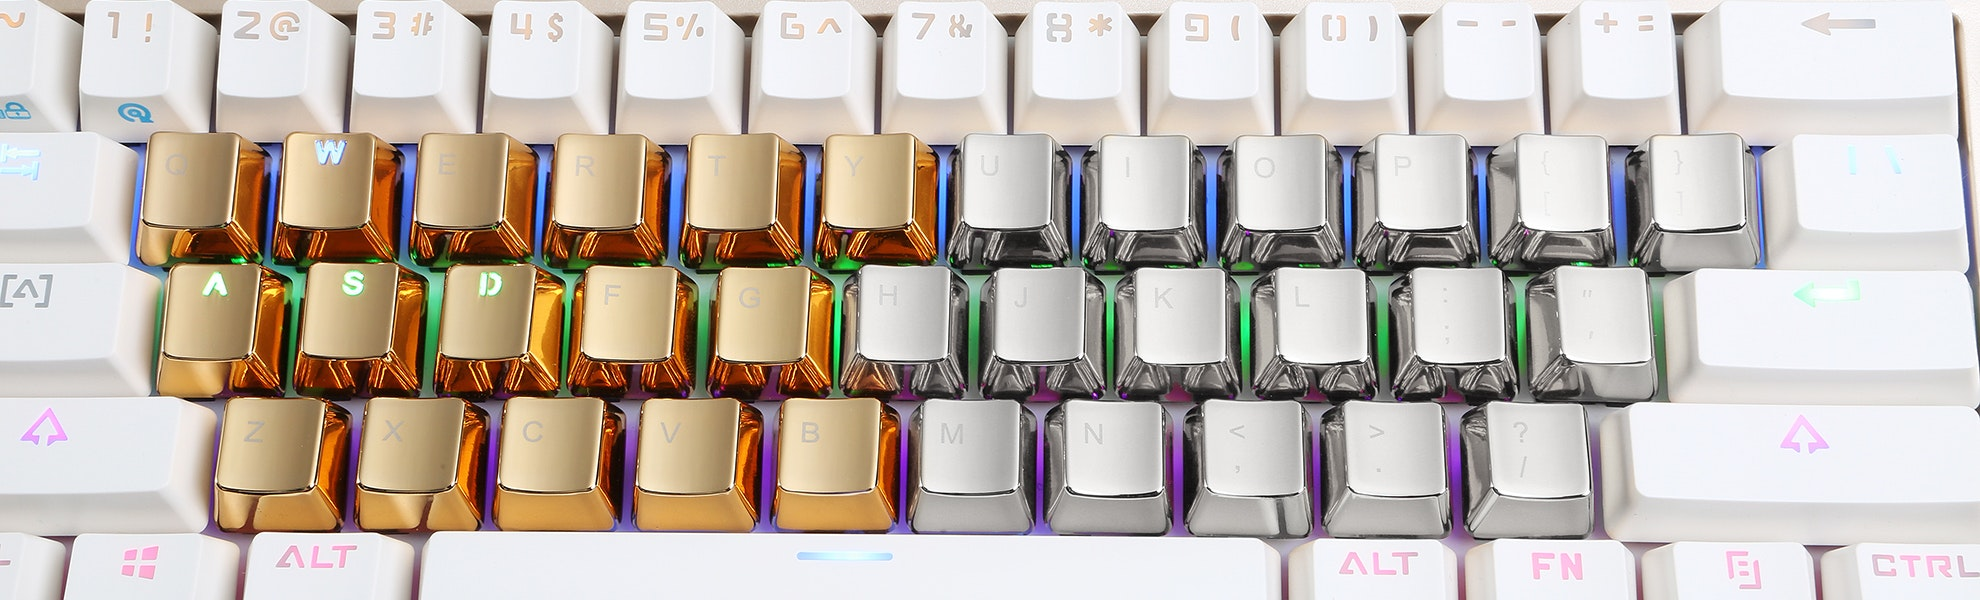 Zinc Gold or Silver Keycaps